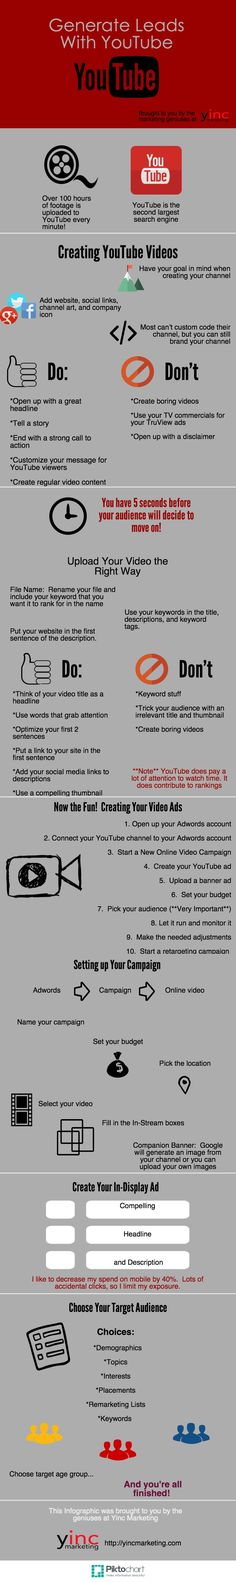 FREE YouTube Marketing Guide.